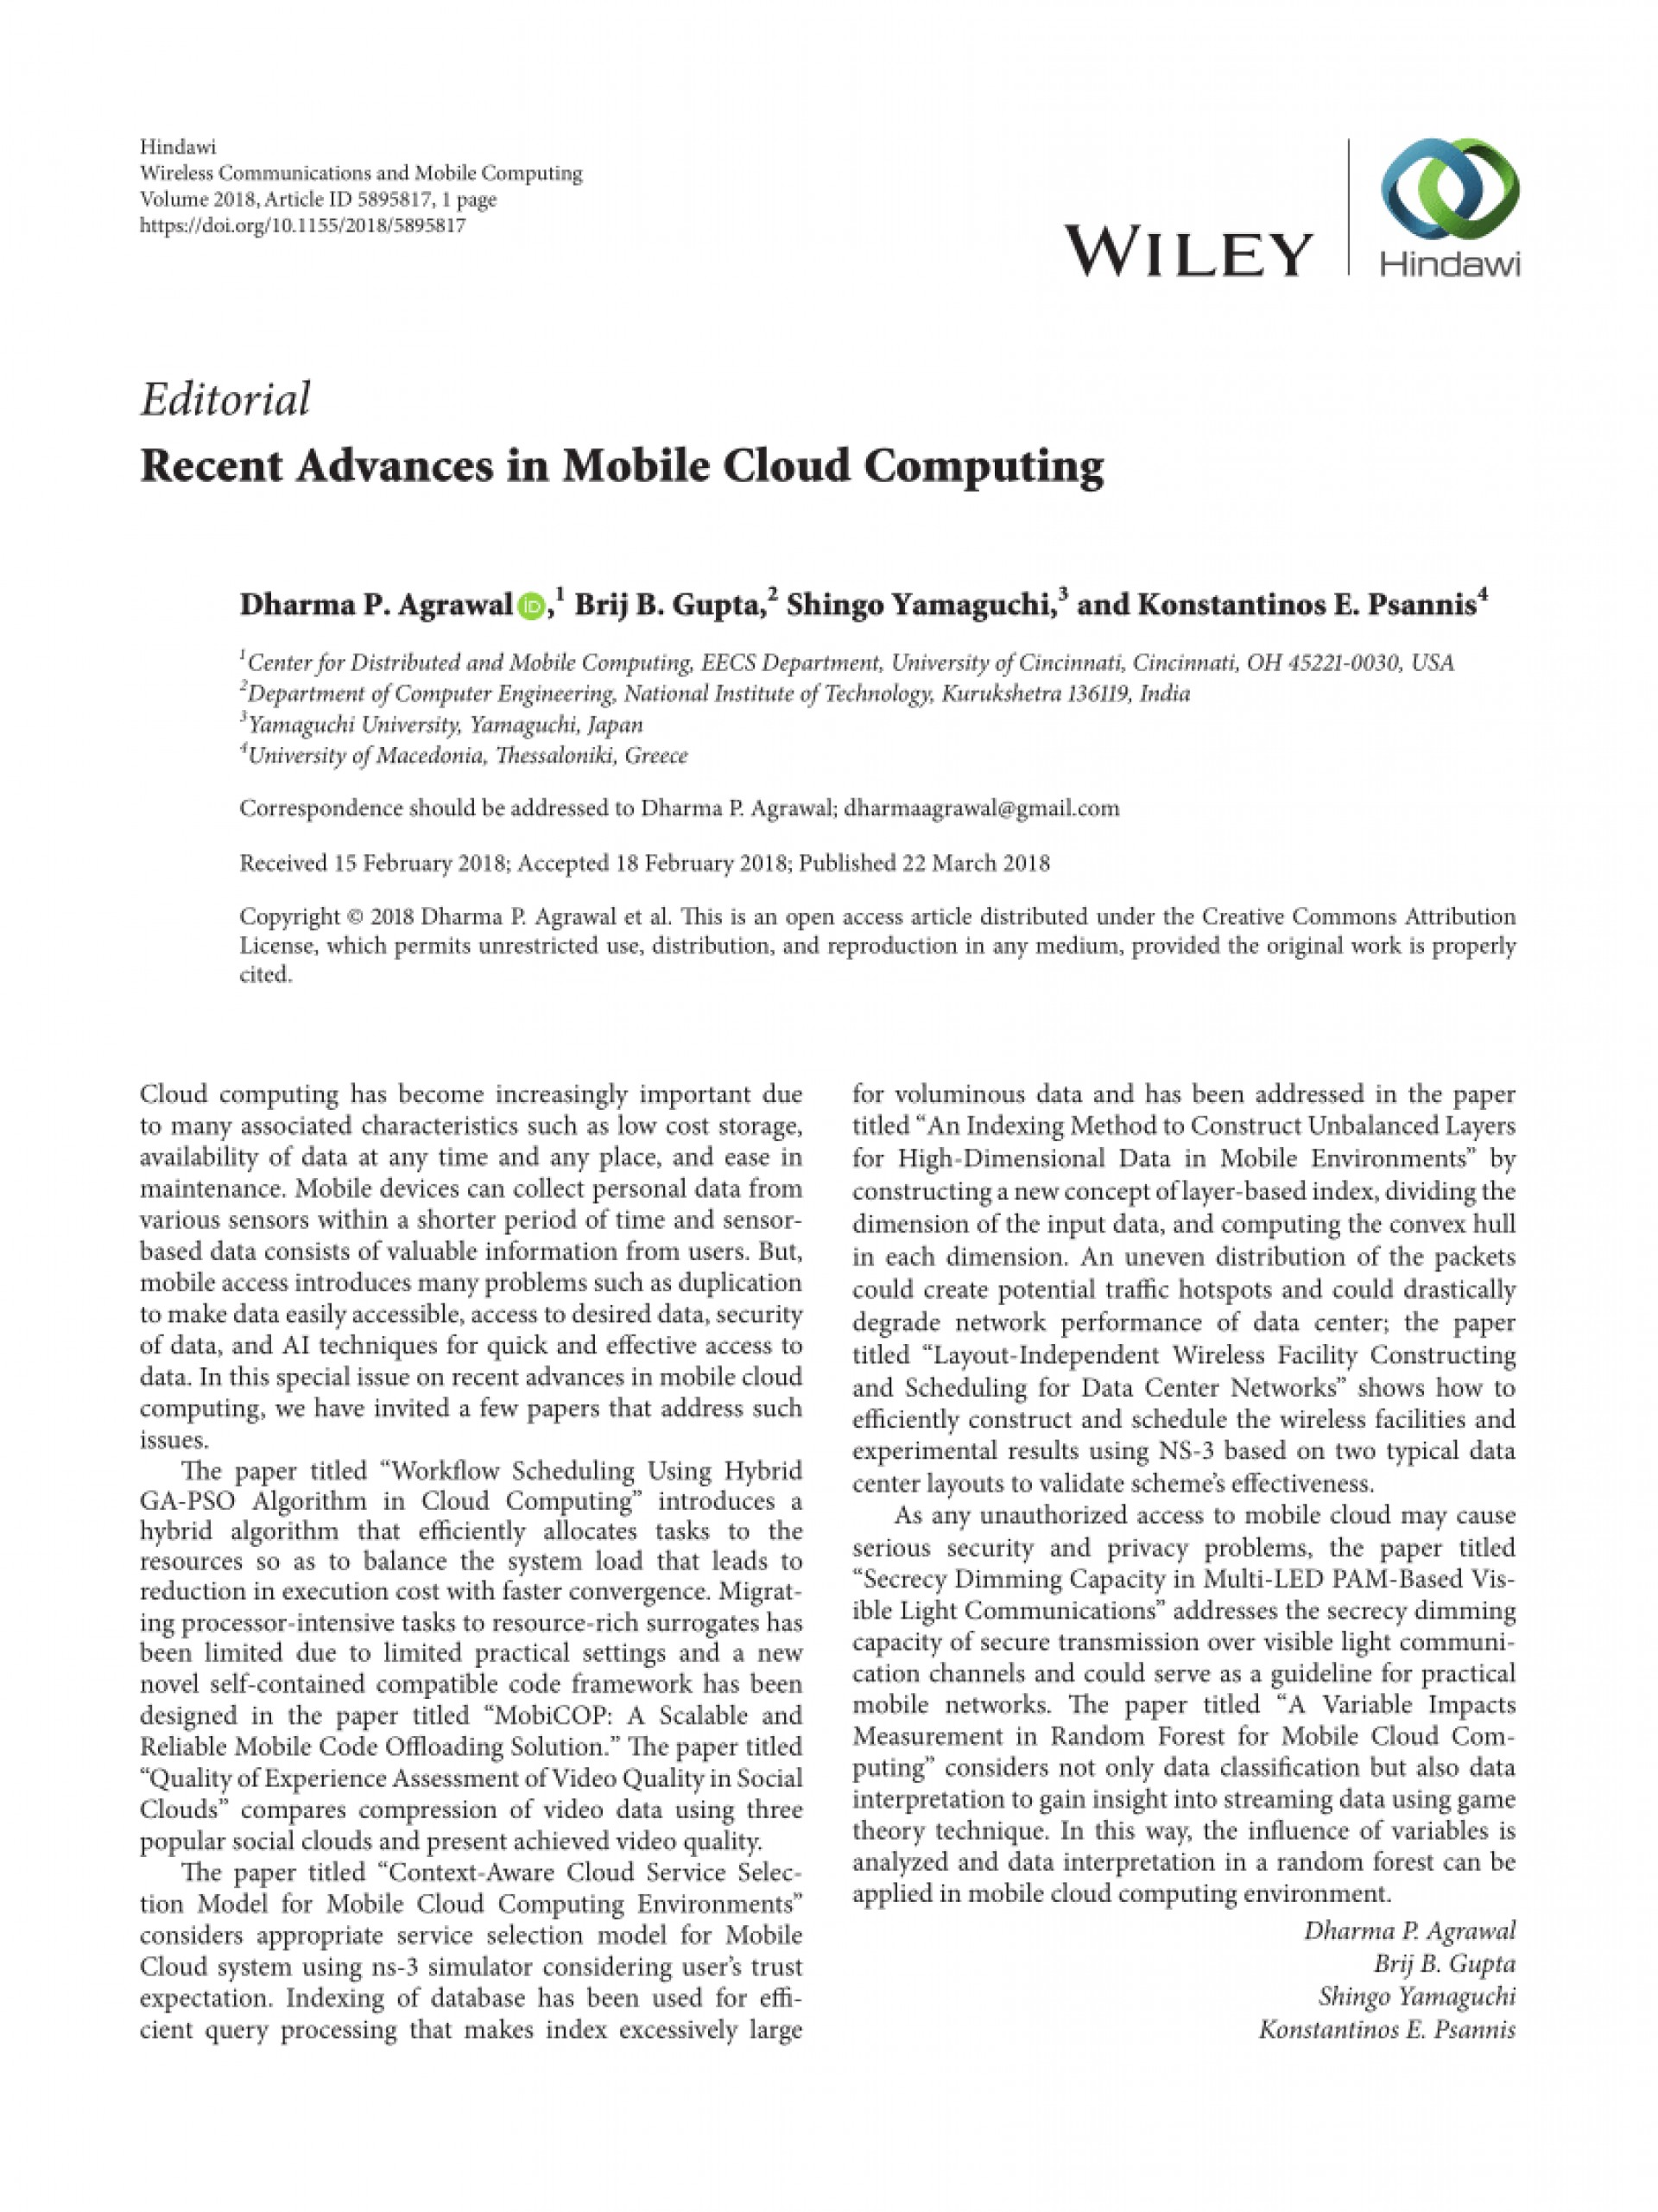 research papers on mobile computing